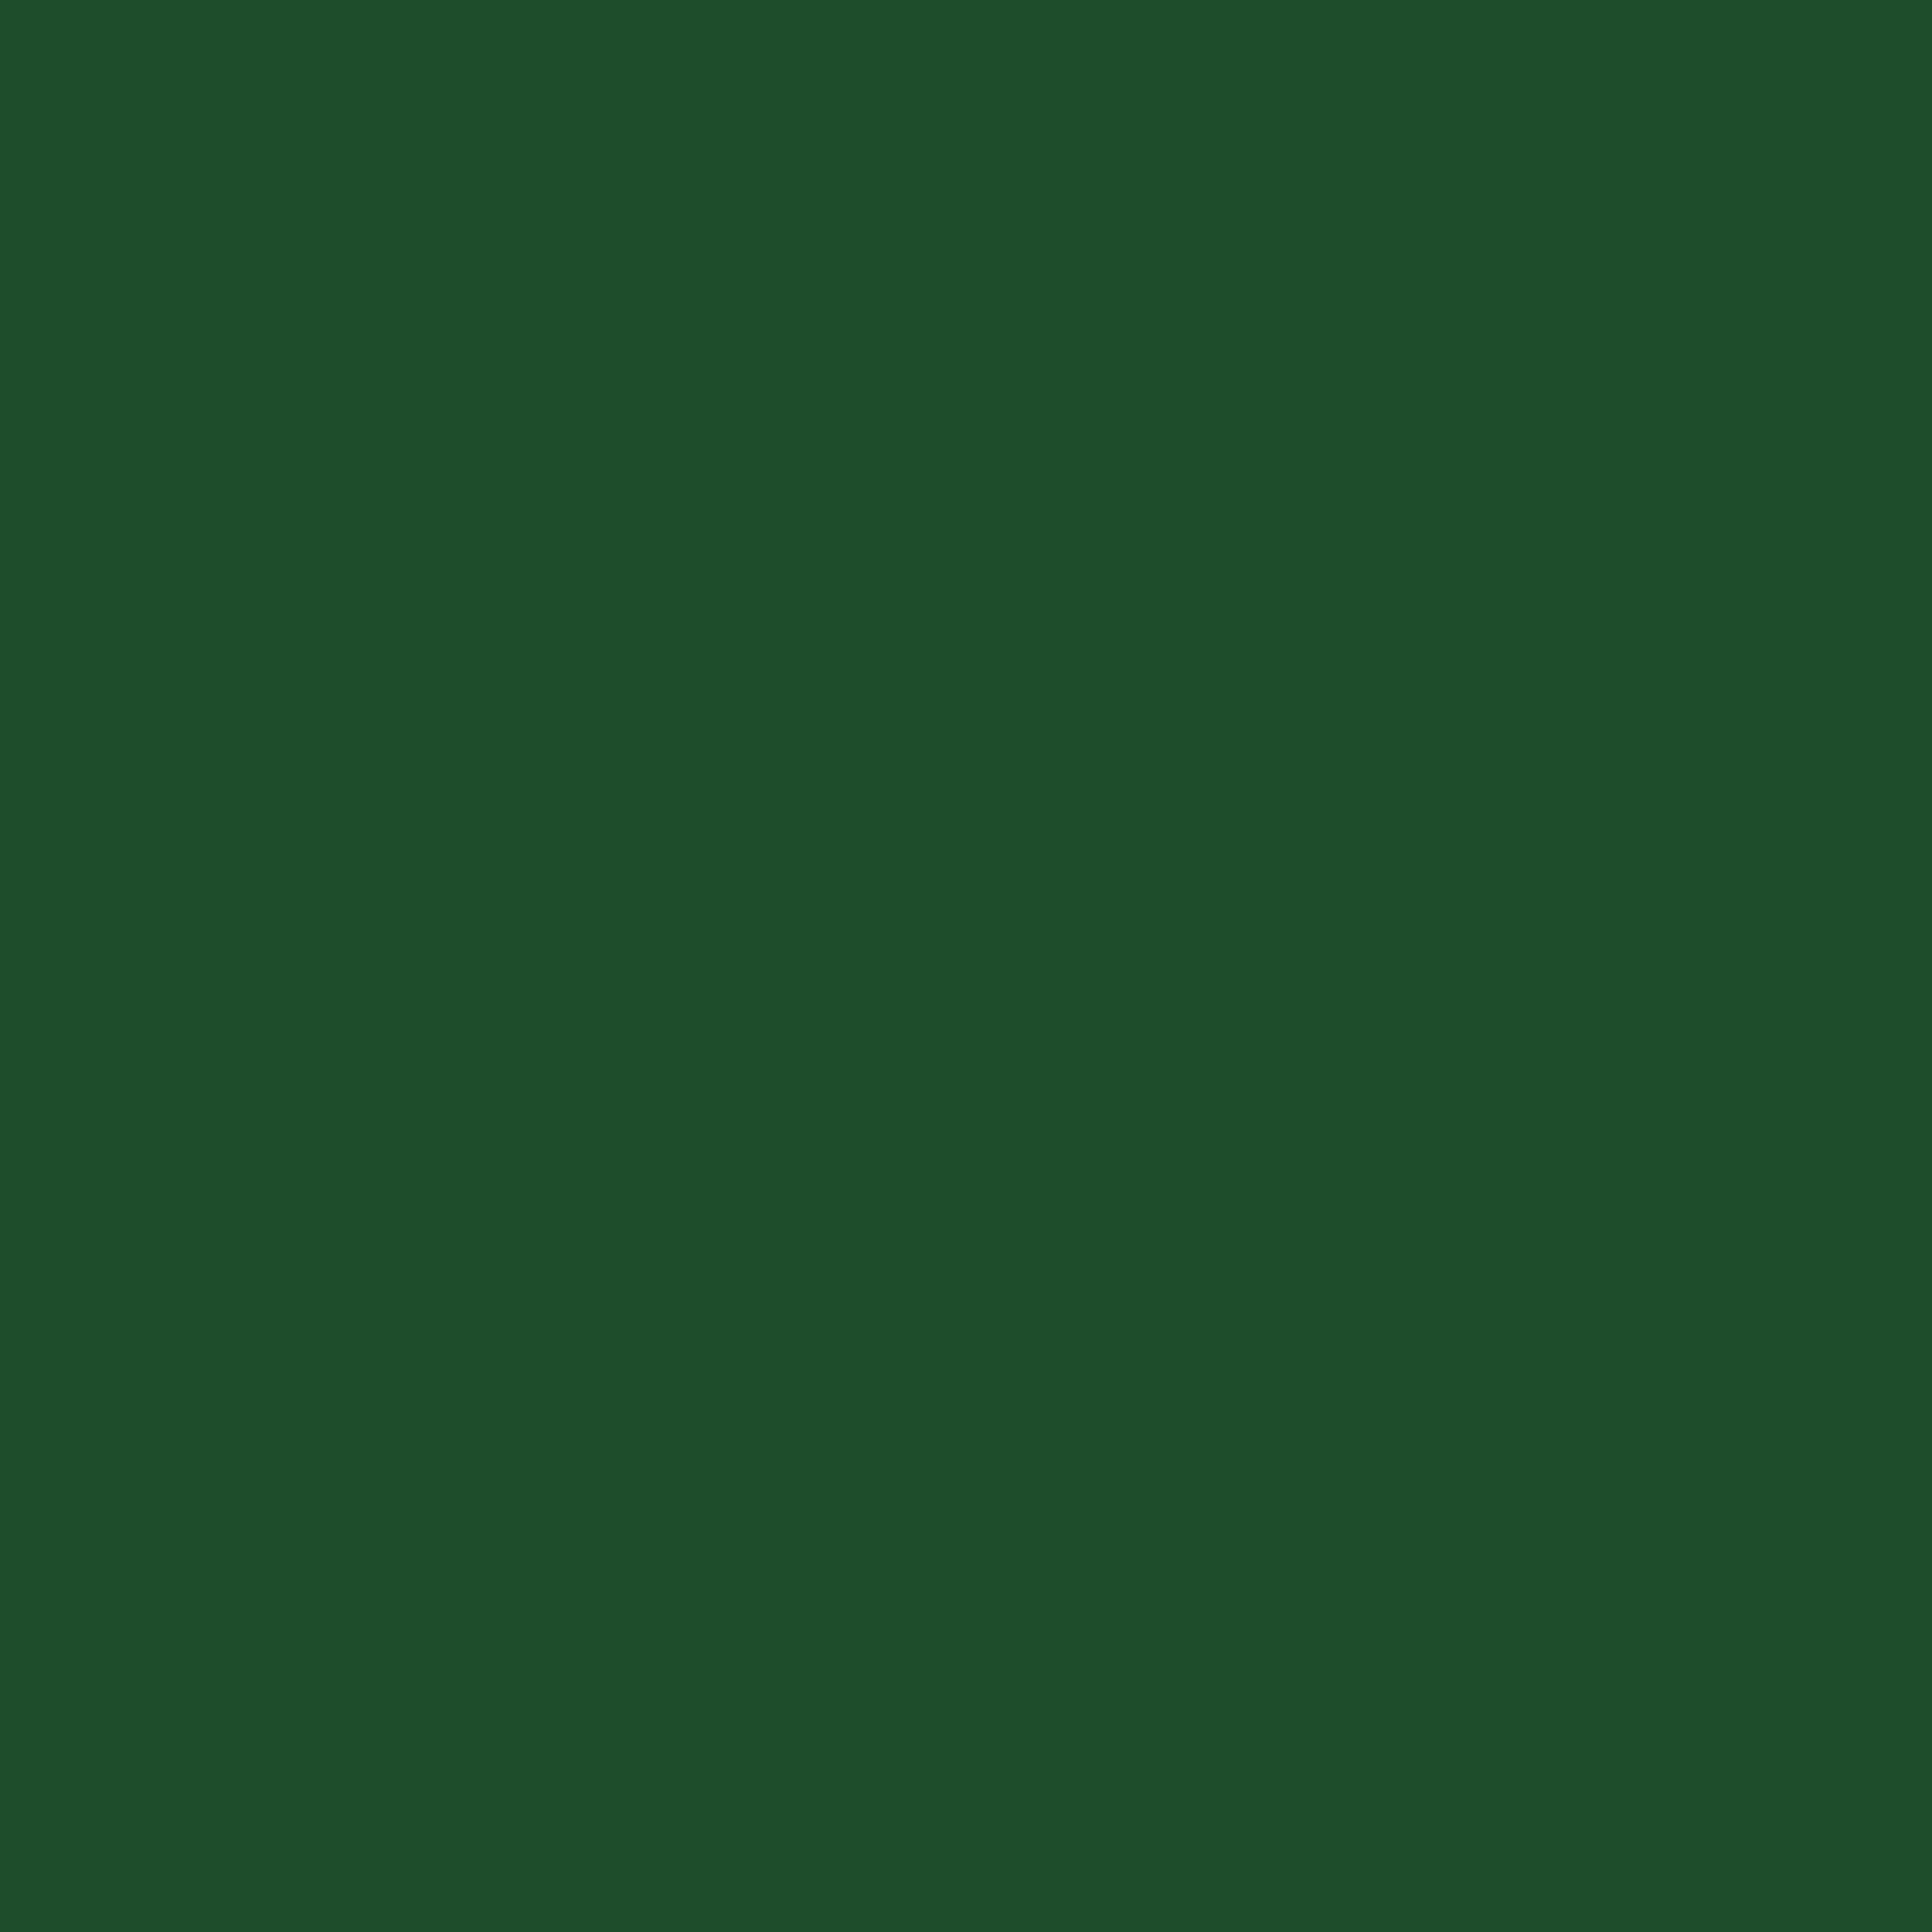 3600x3600 Cal Poly Green Solid Color Background 3600x3600